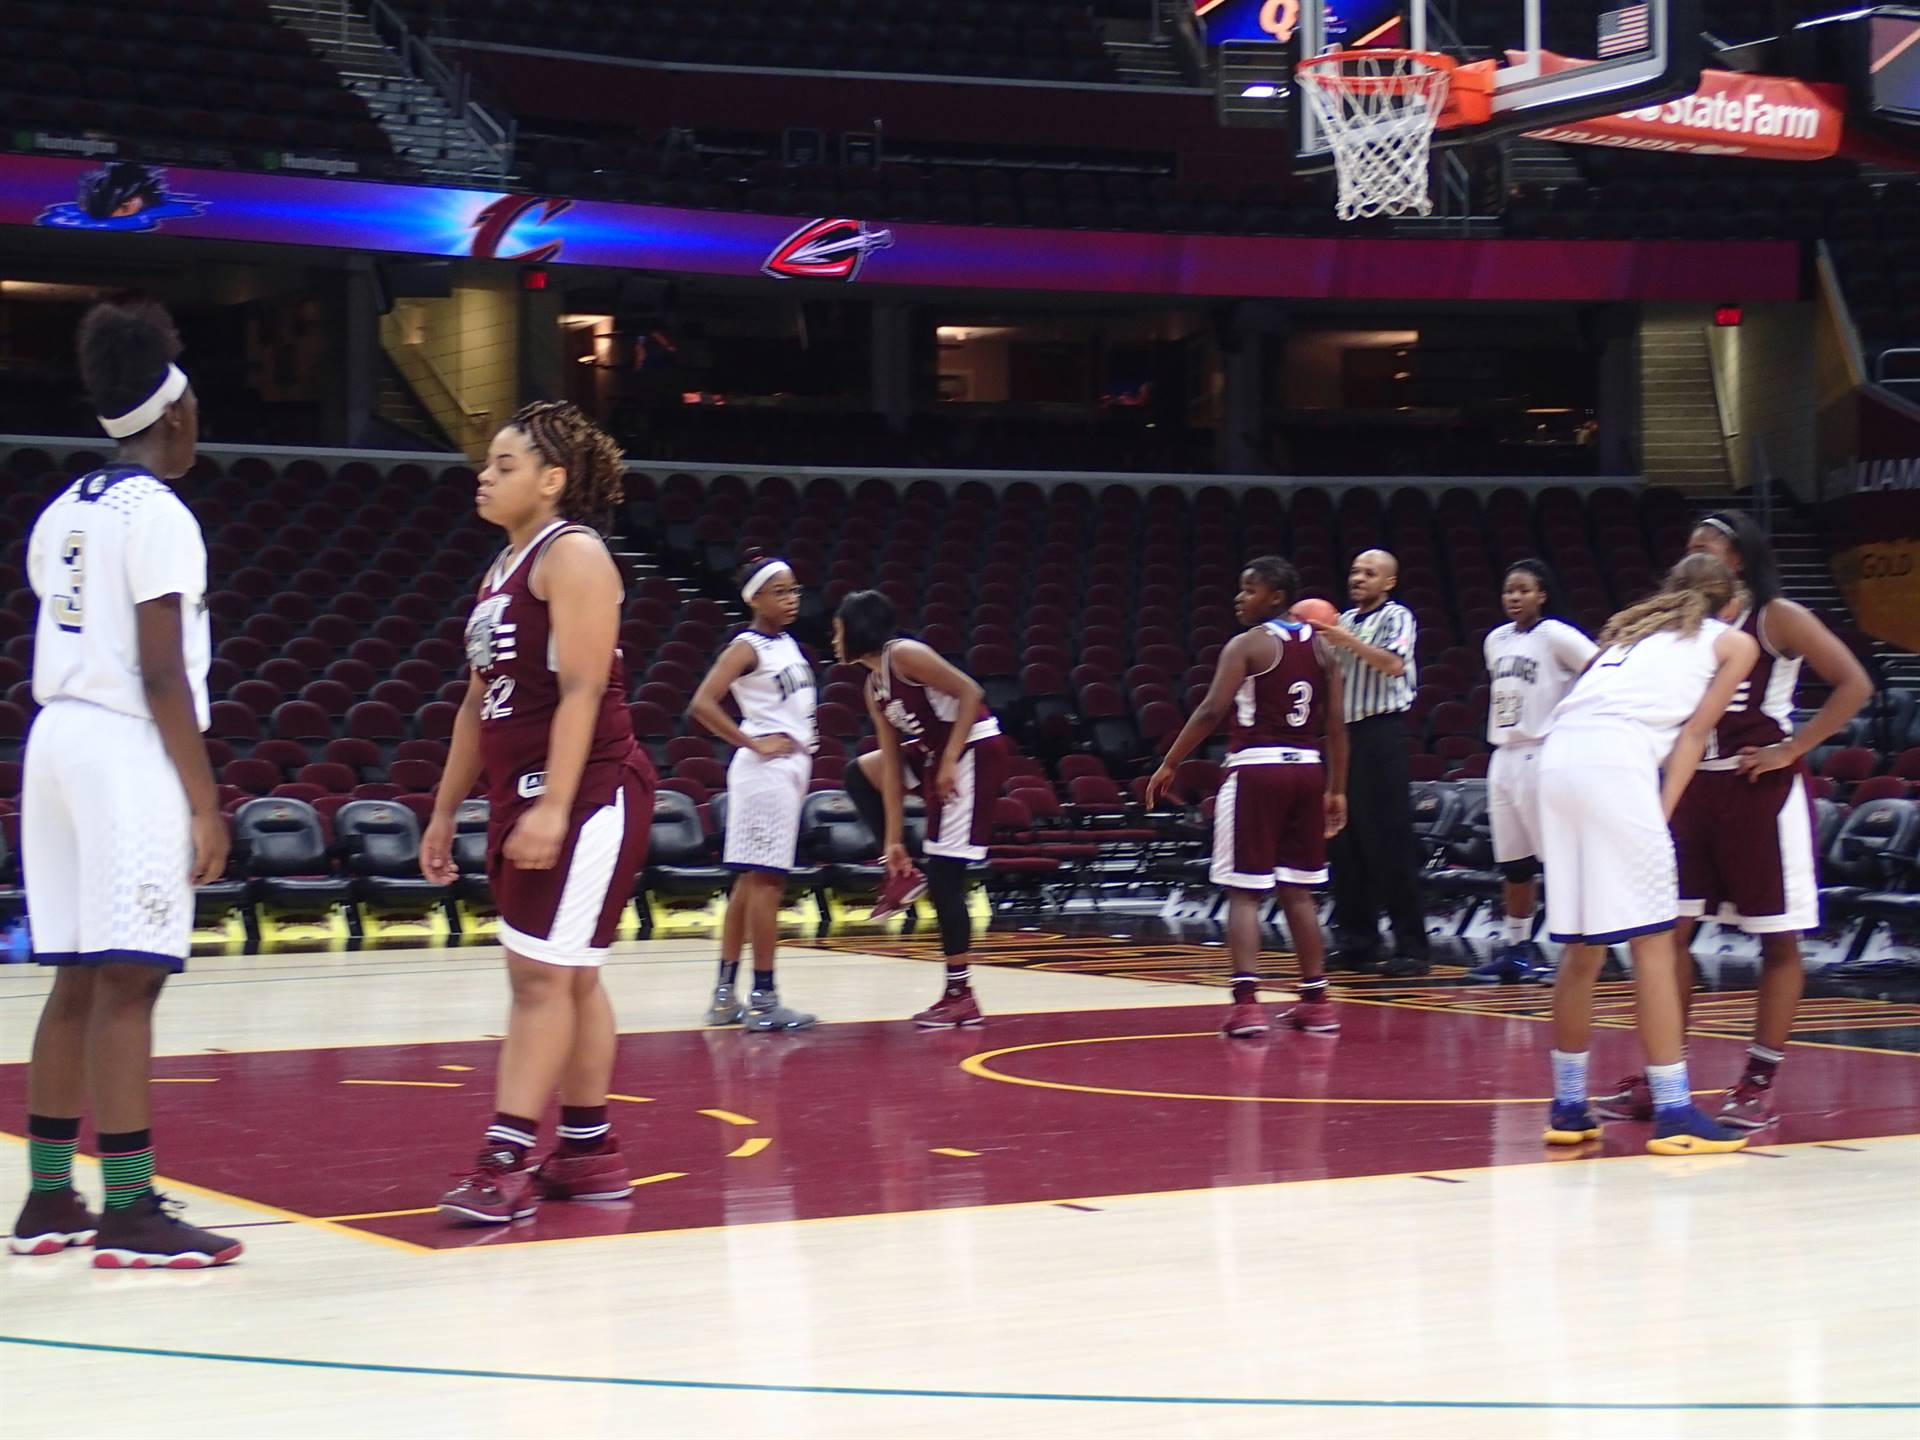 Girls basketball team at the Q